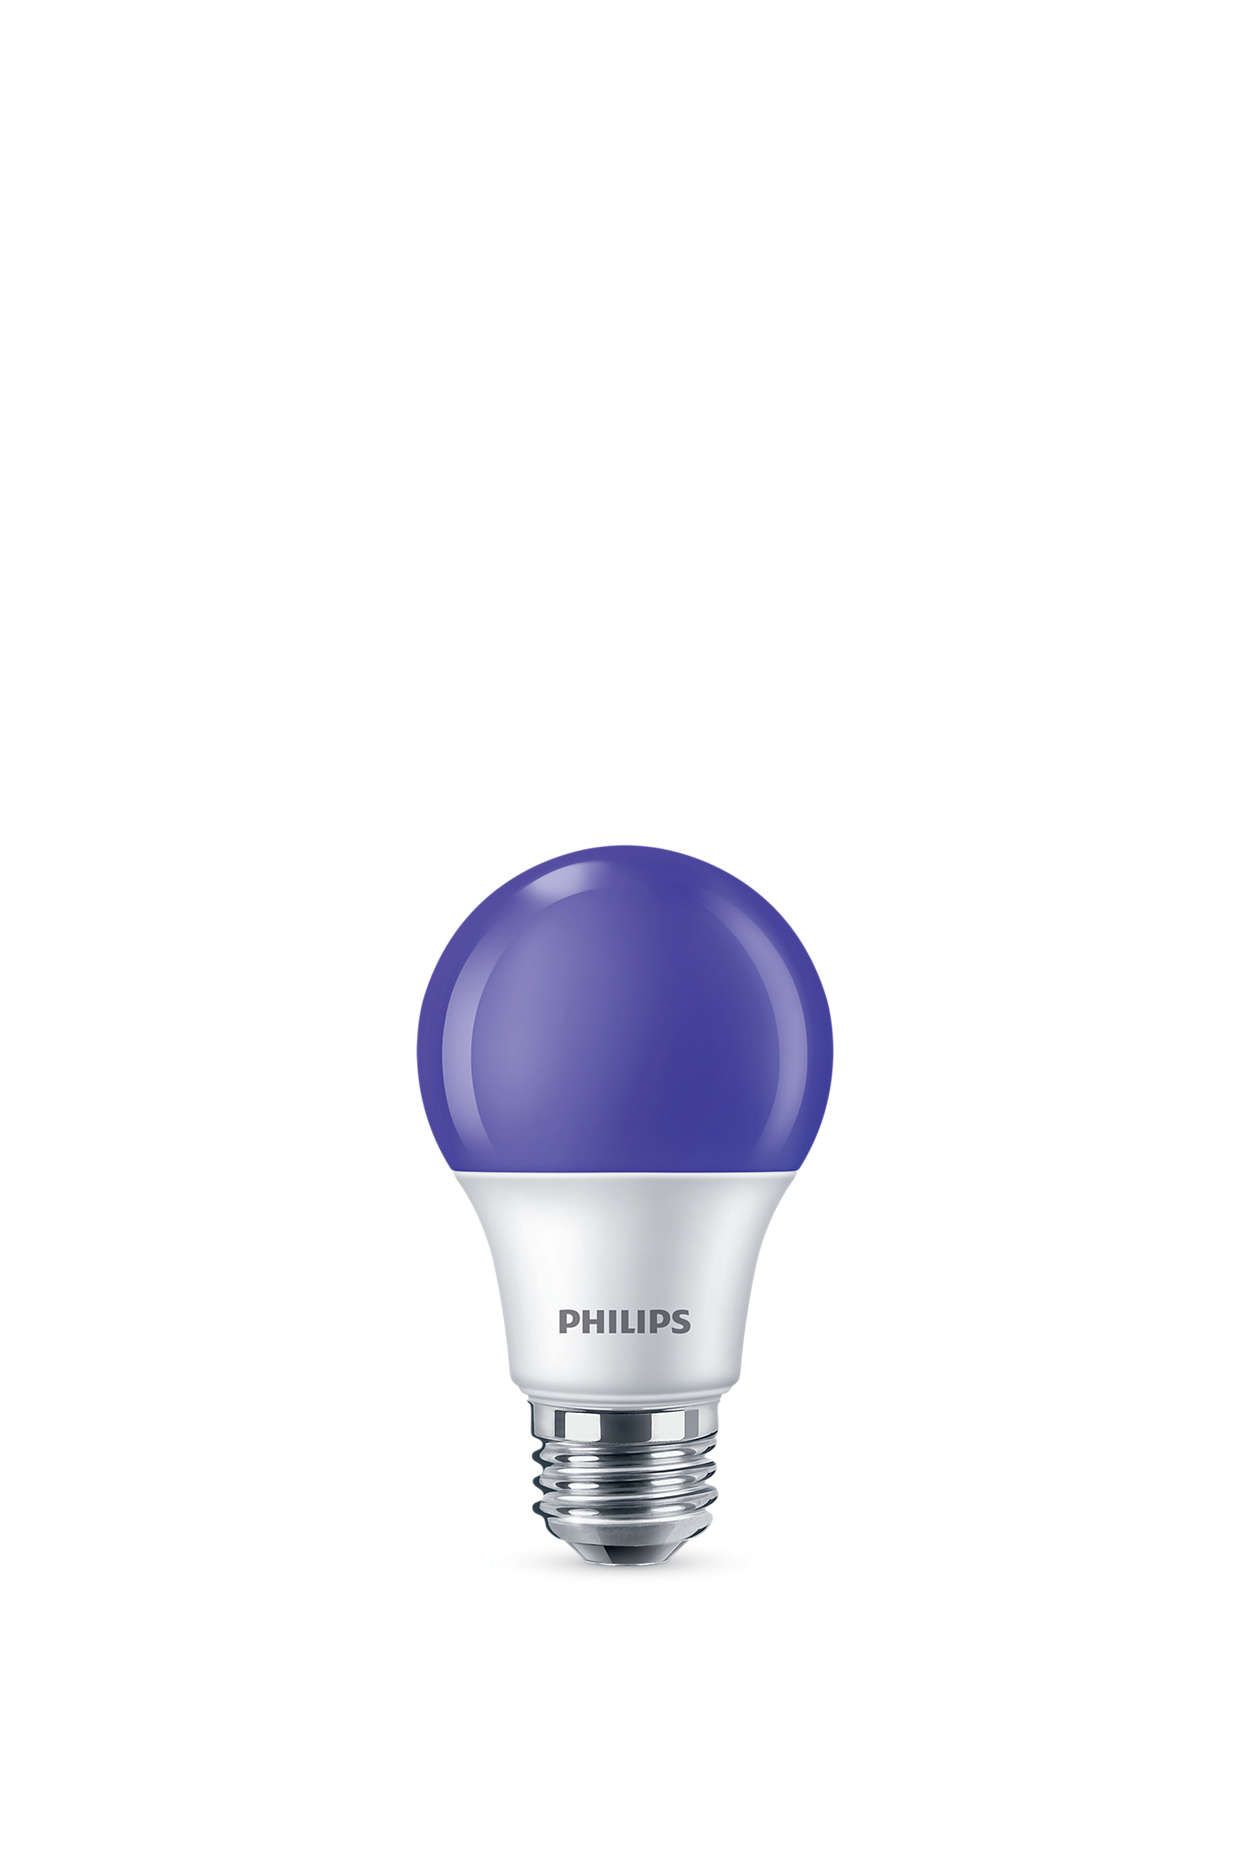 Brighten your home with infinite possibilities.